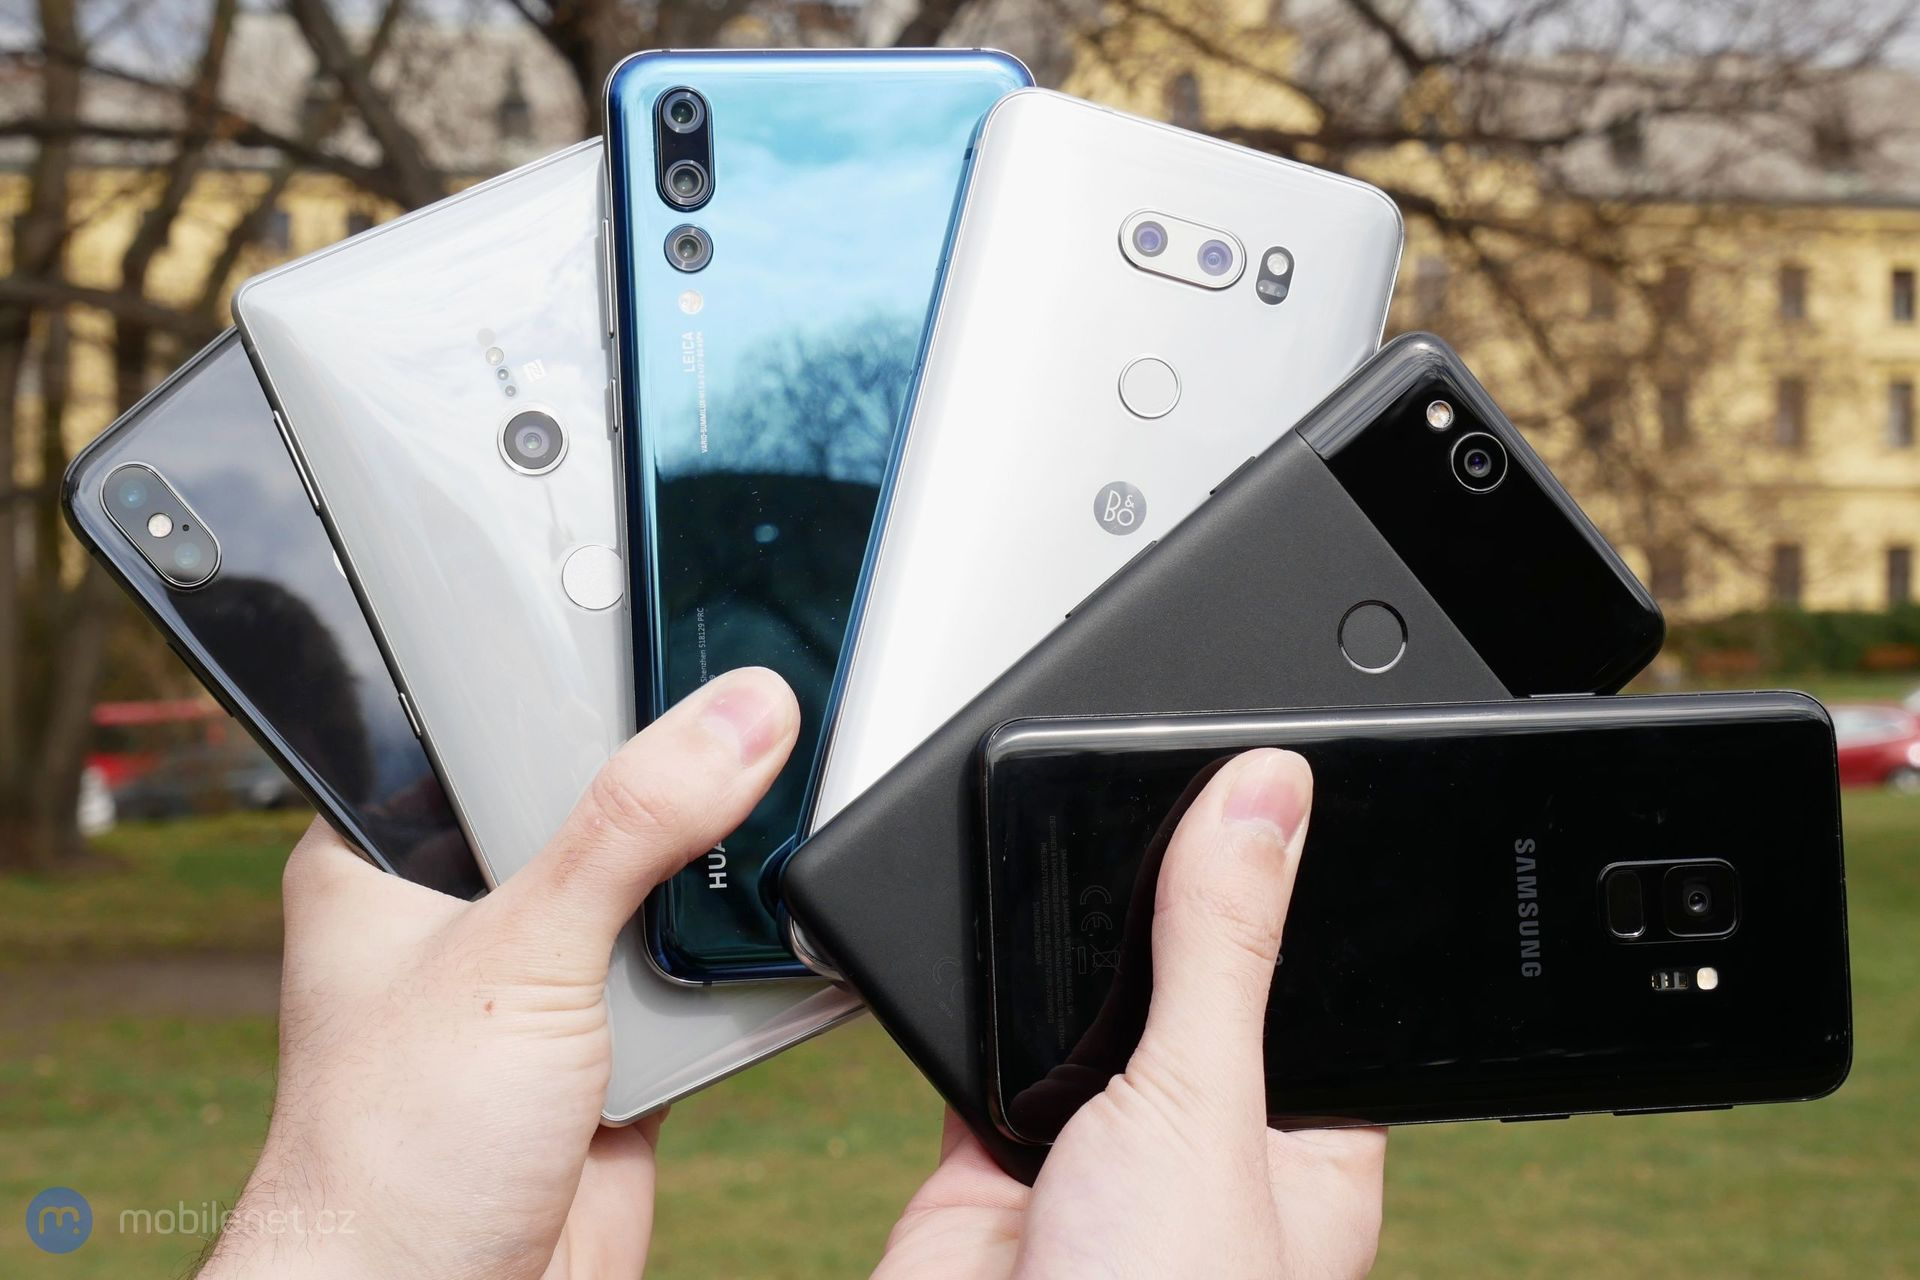 Apple iPhone X, Google Pixel 2, Huawei P20 Pro, LG V30, Samsung Galaxy S9 a Sony Xperia XZ